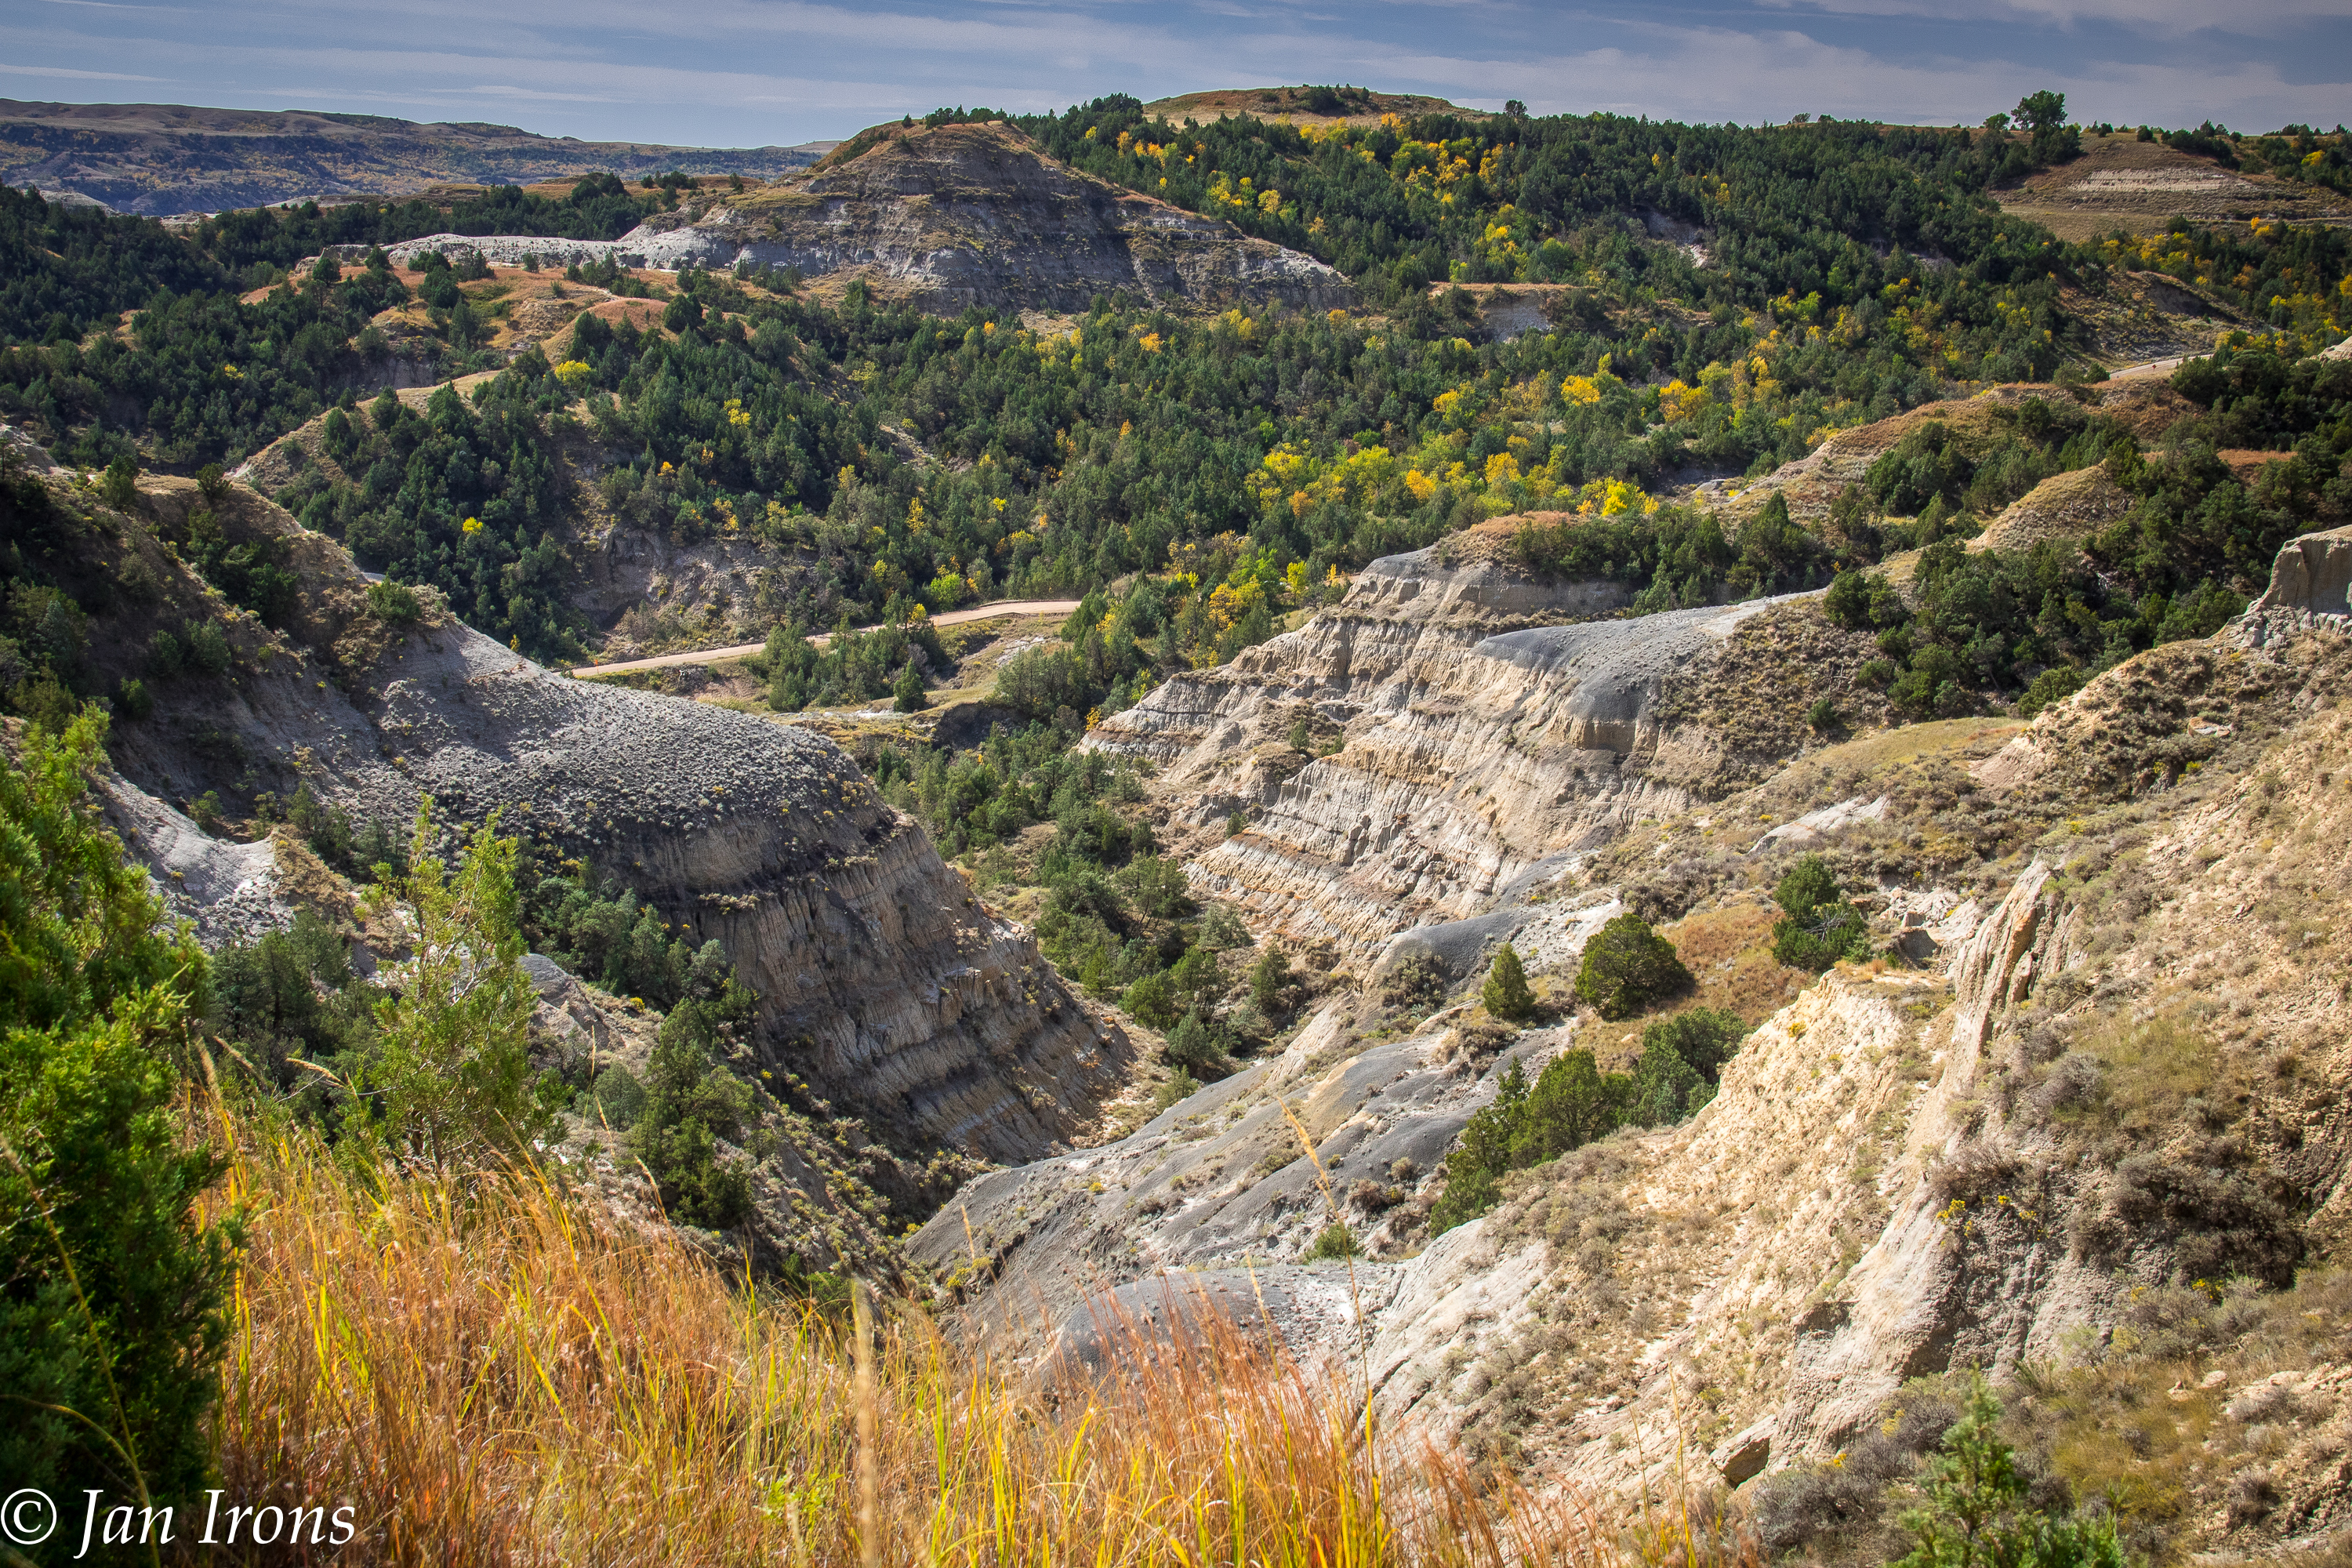 Theodore Roosevelt National Park - what a surprise - the canyons and wildlife were worth waiting for!